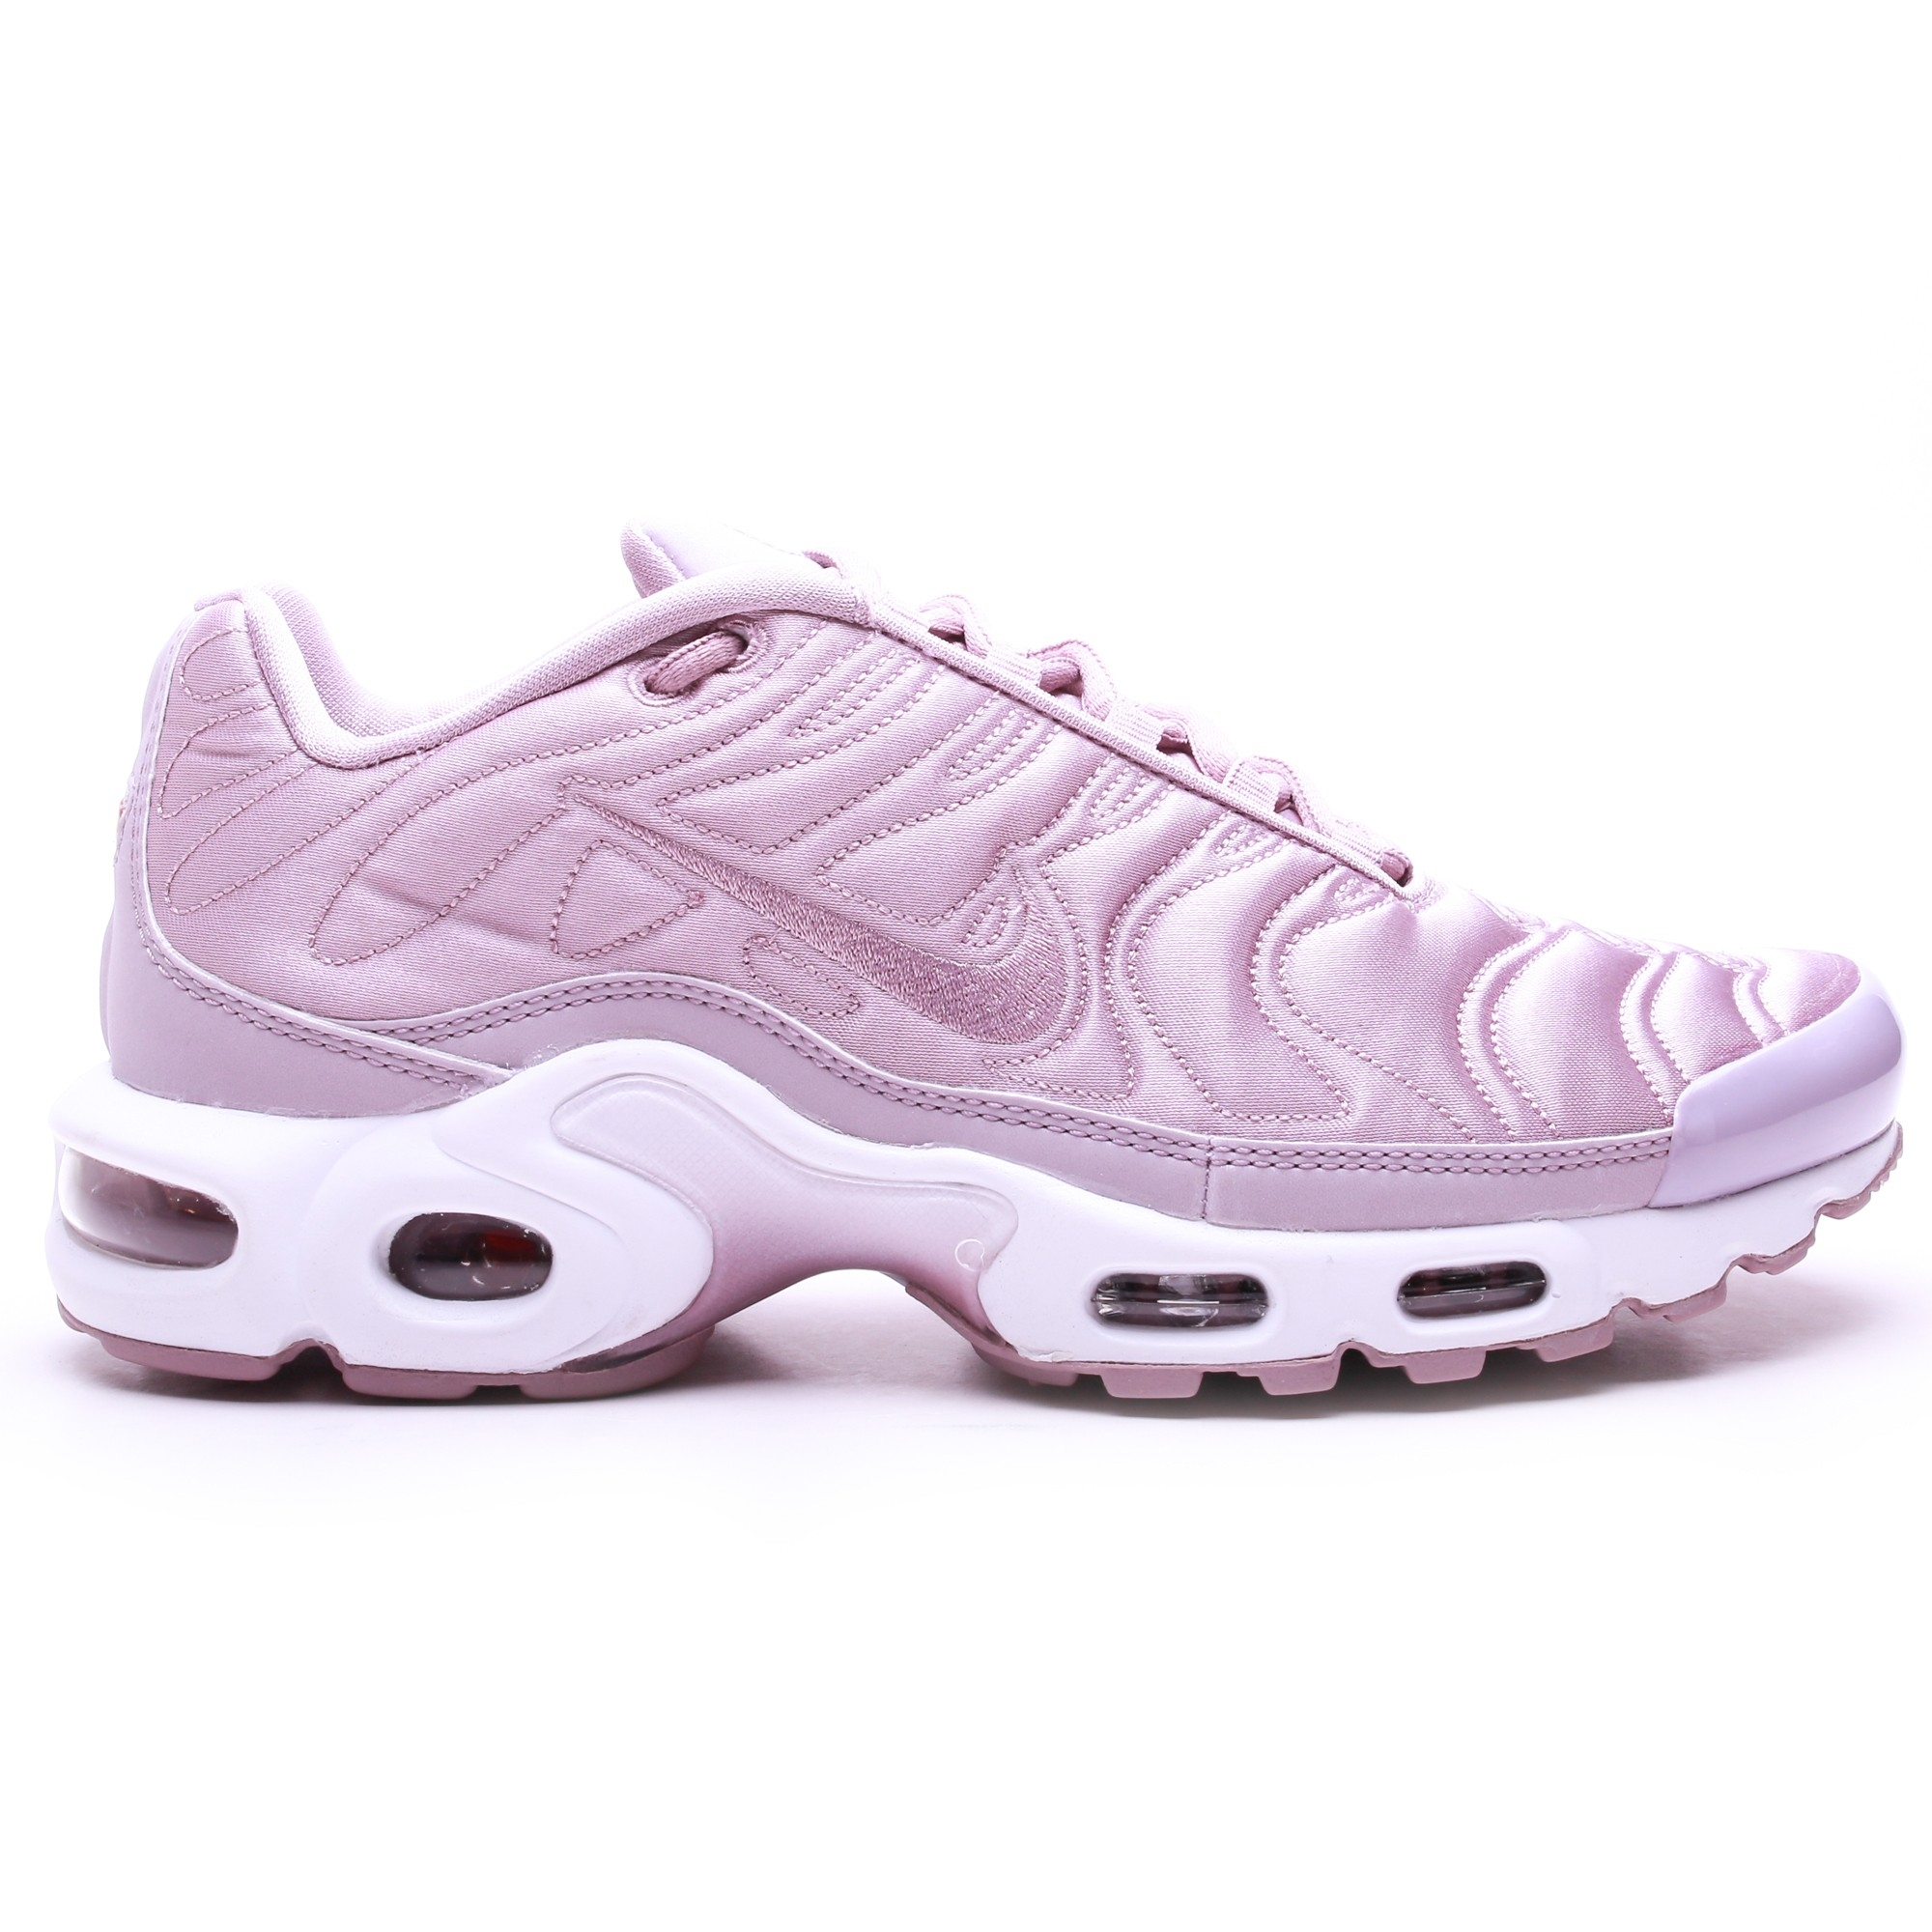 new arrival 82d62 4a959 nike air max plus womens